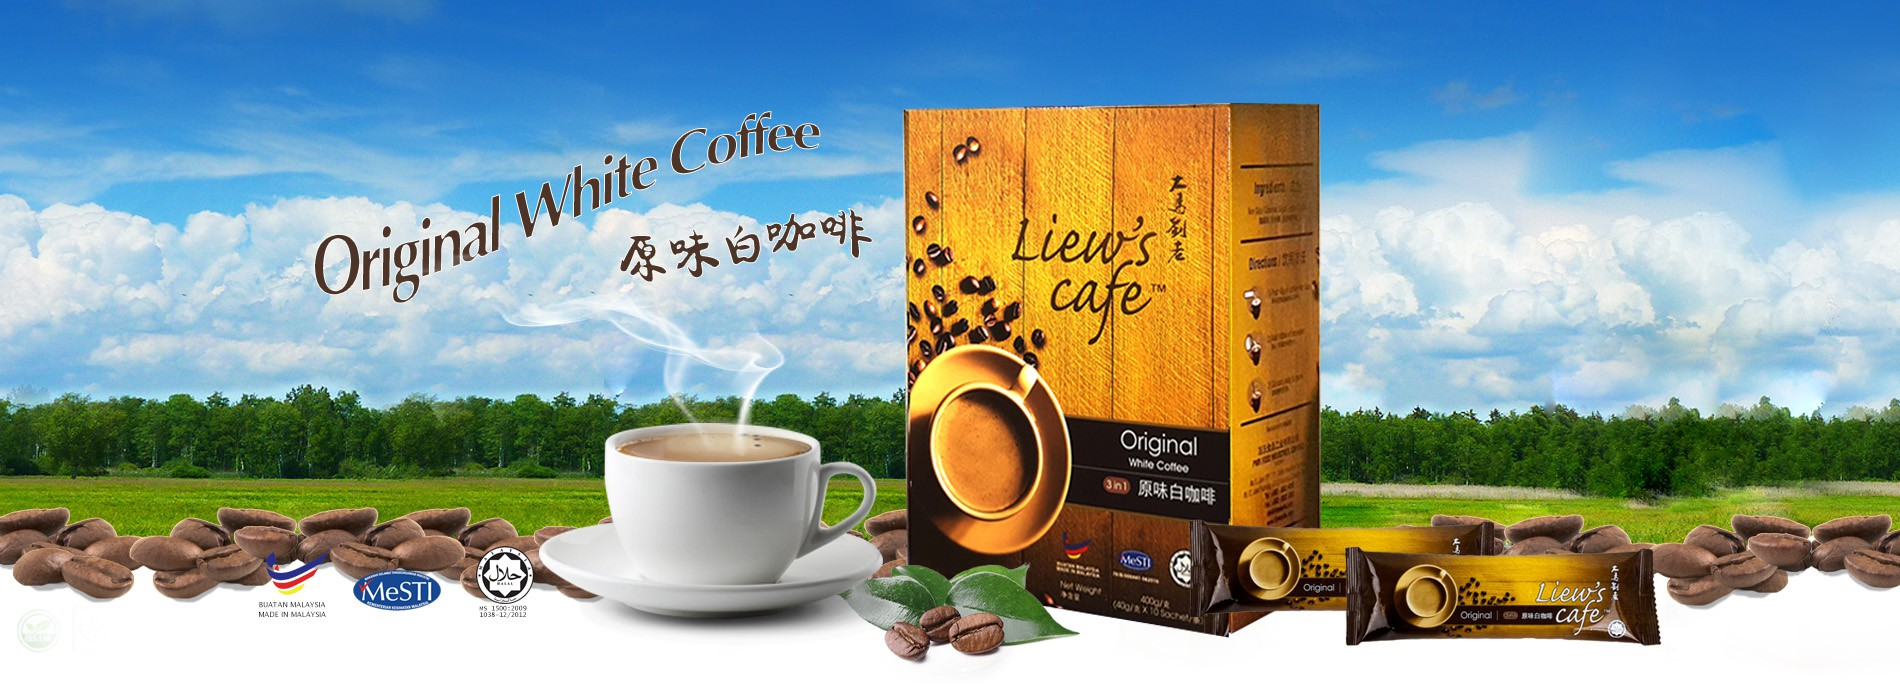 Liew's Cafe Classic Coffee Series 大马刘老经典咖啡系列